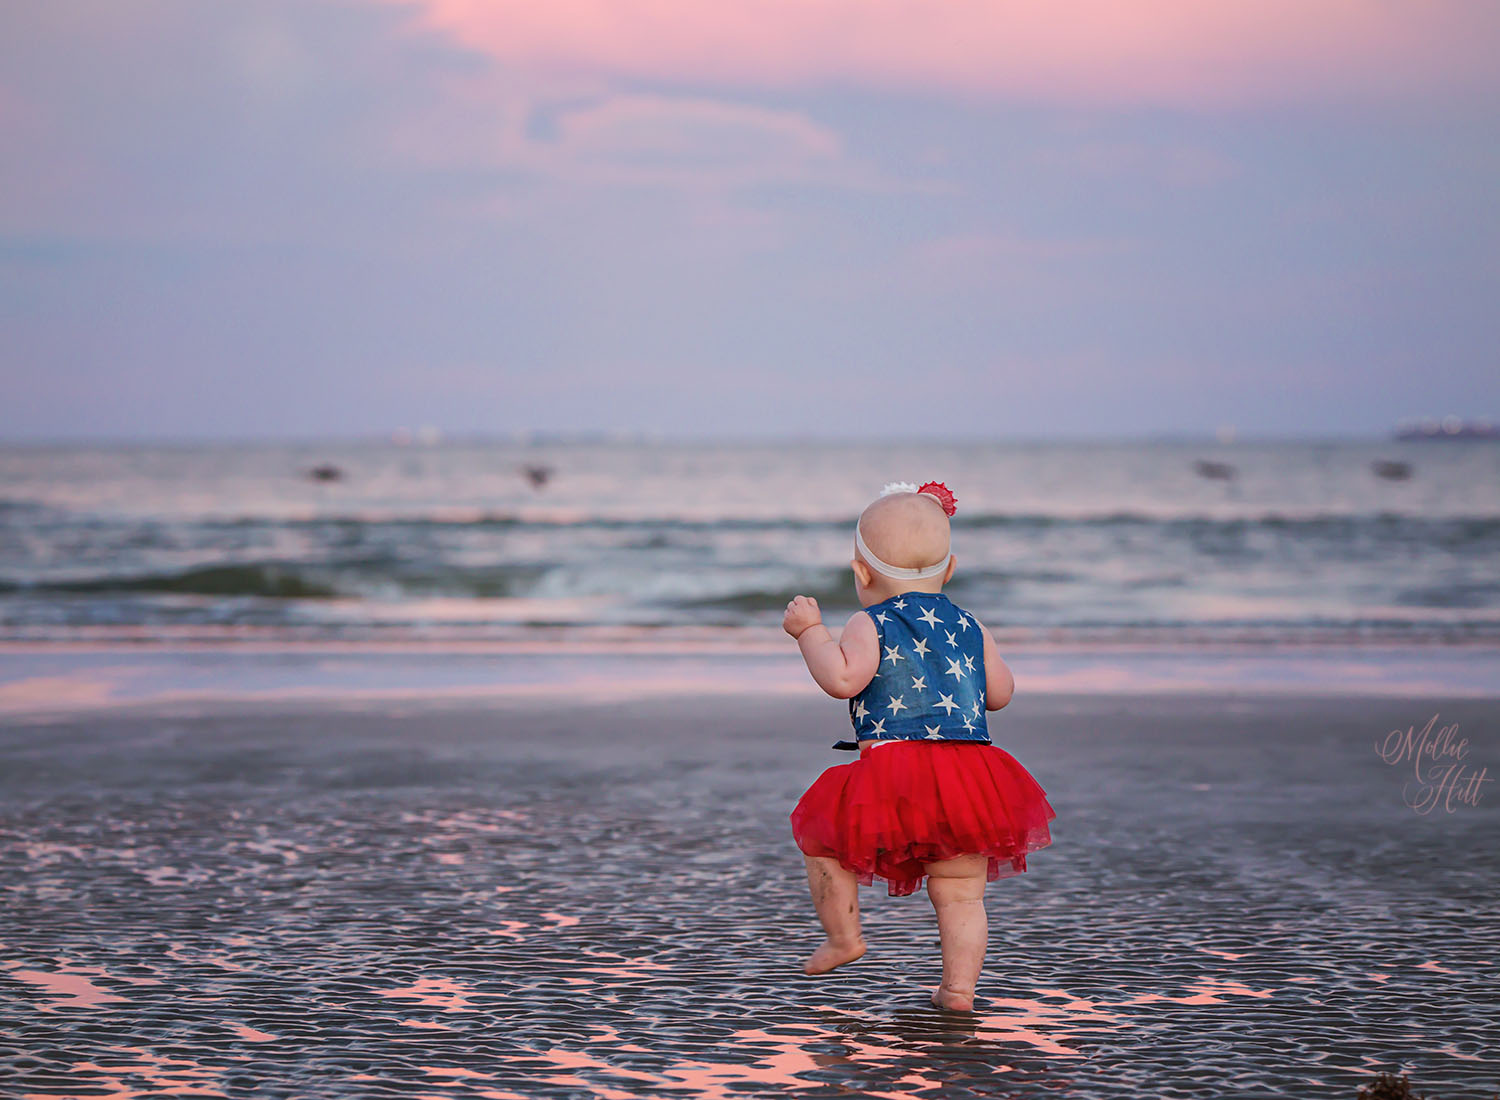 Toddler runs through the wet sand at the beach with a sunset reflecting on the water